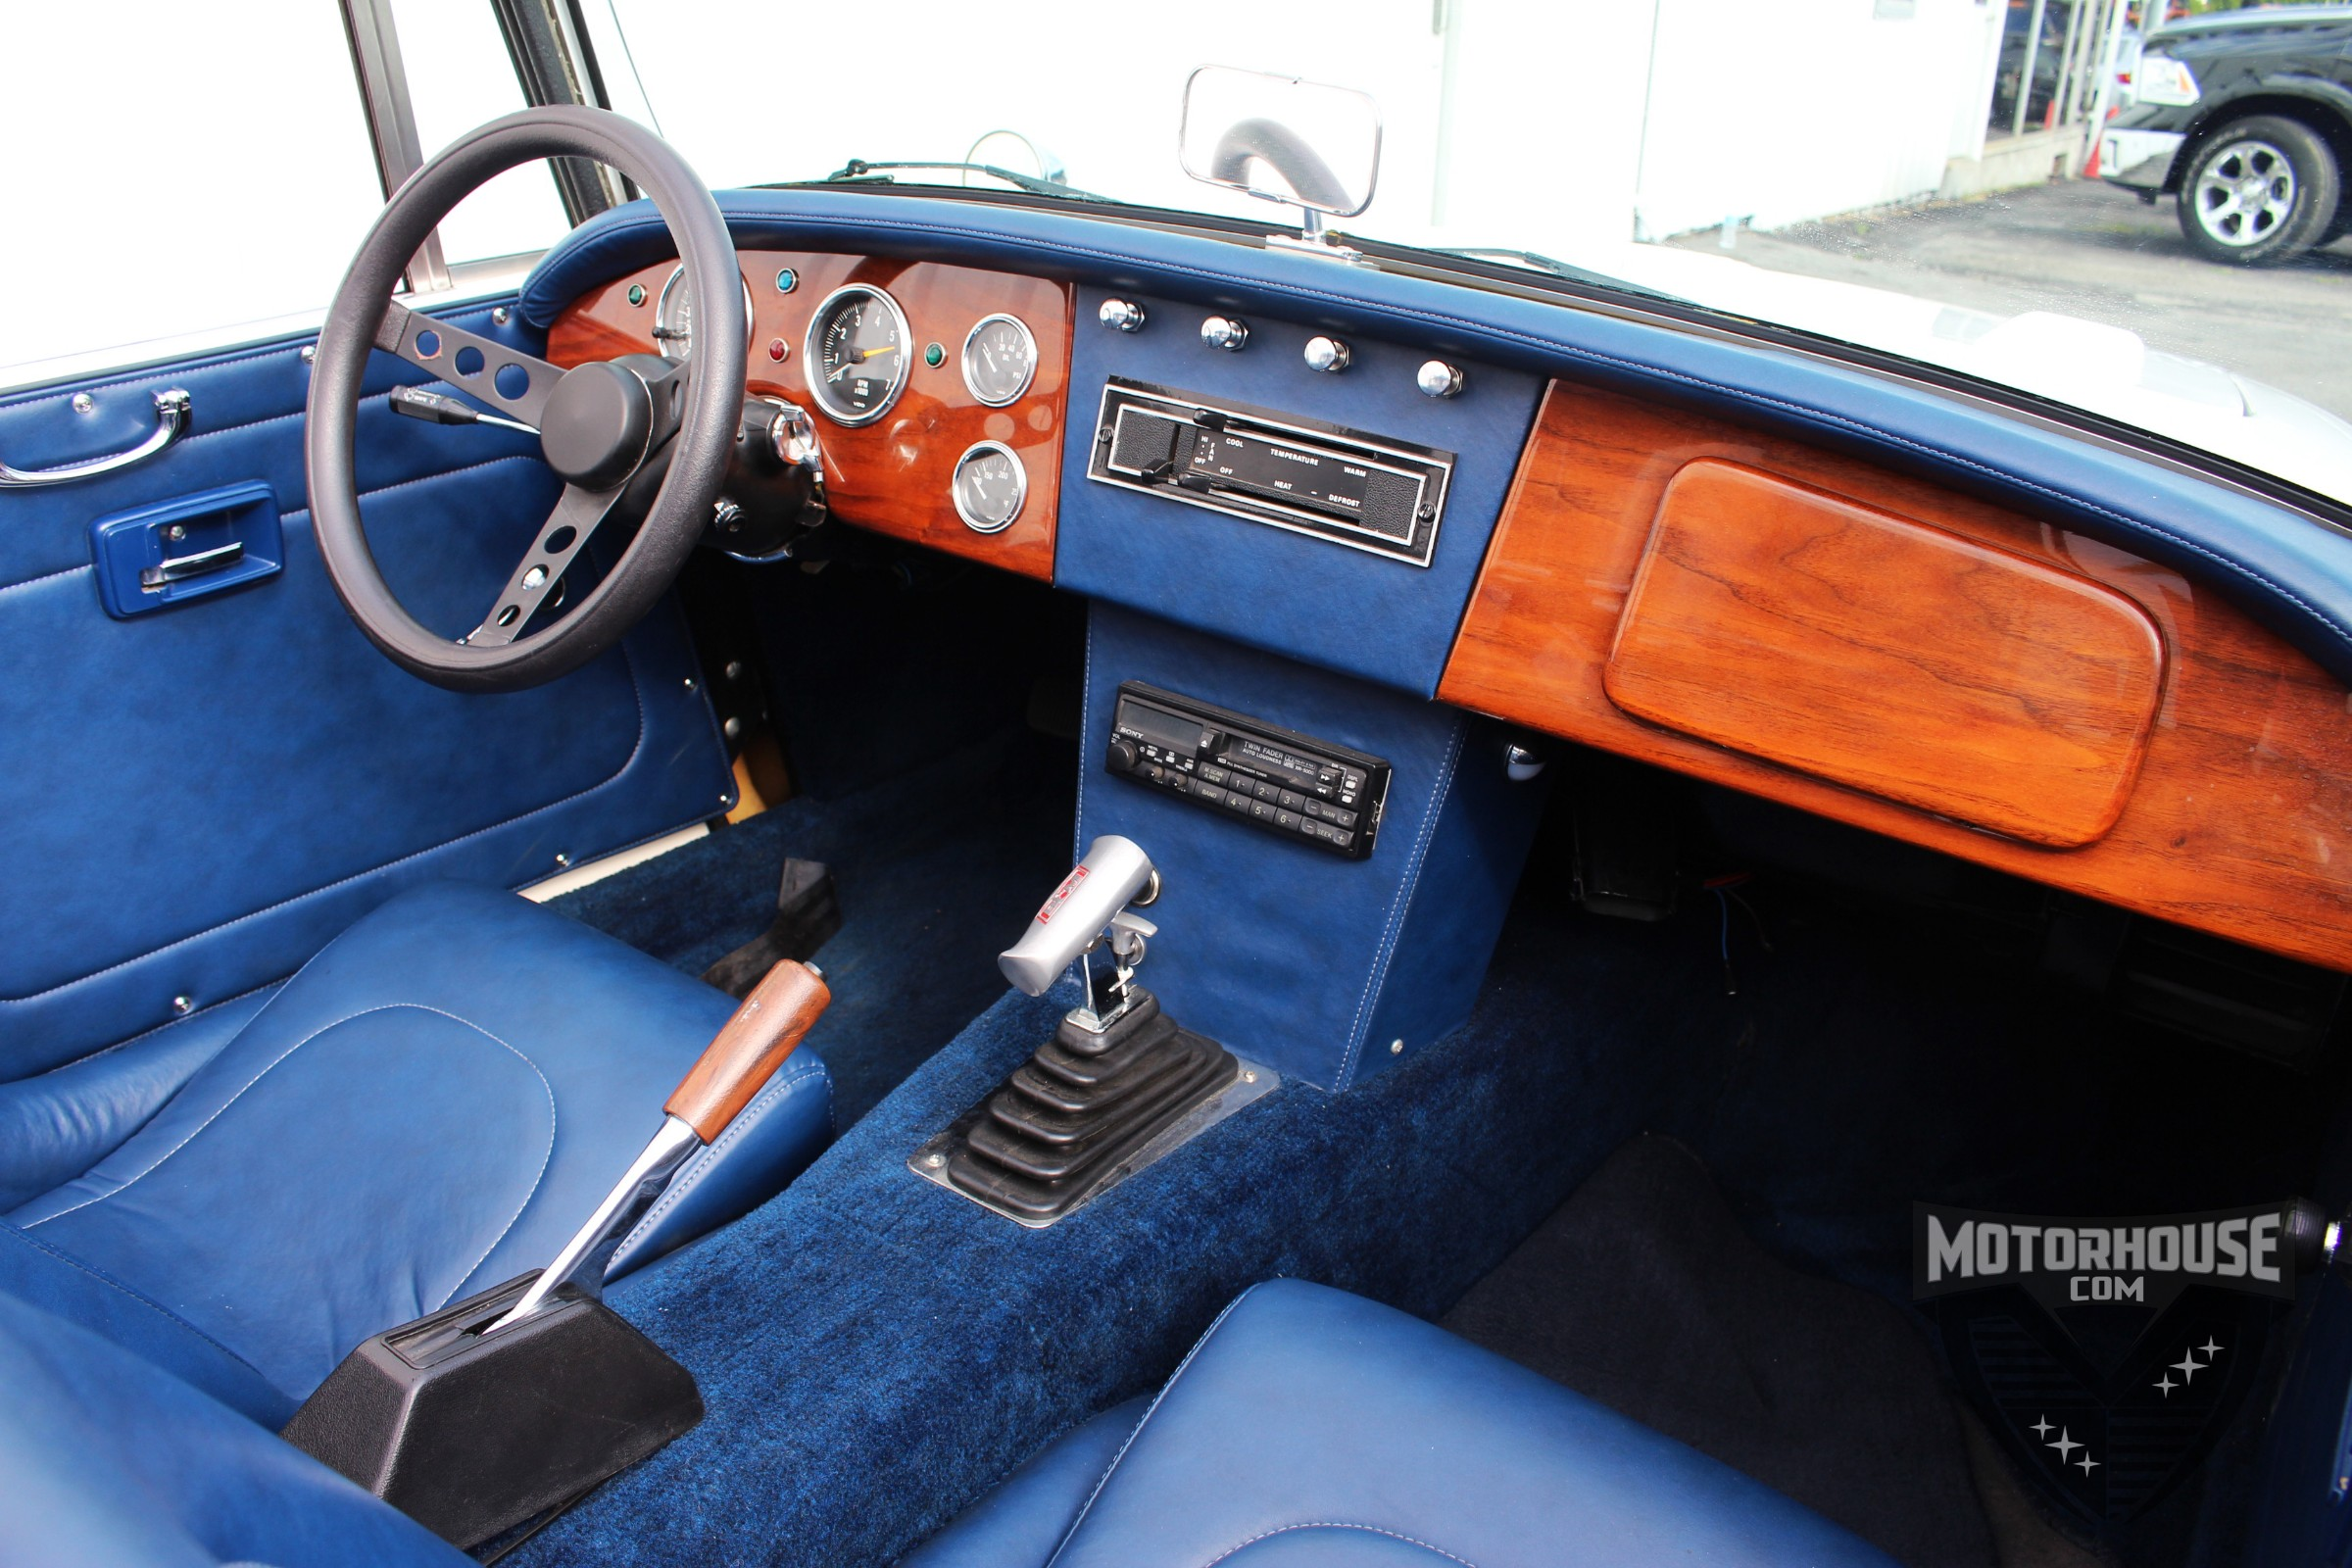 1965 Austin-Healey 3000Z Convertable (Stk: 1375) in Carleton Place - Image 31 of 48